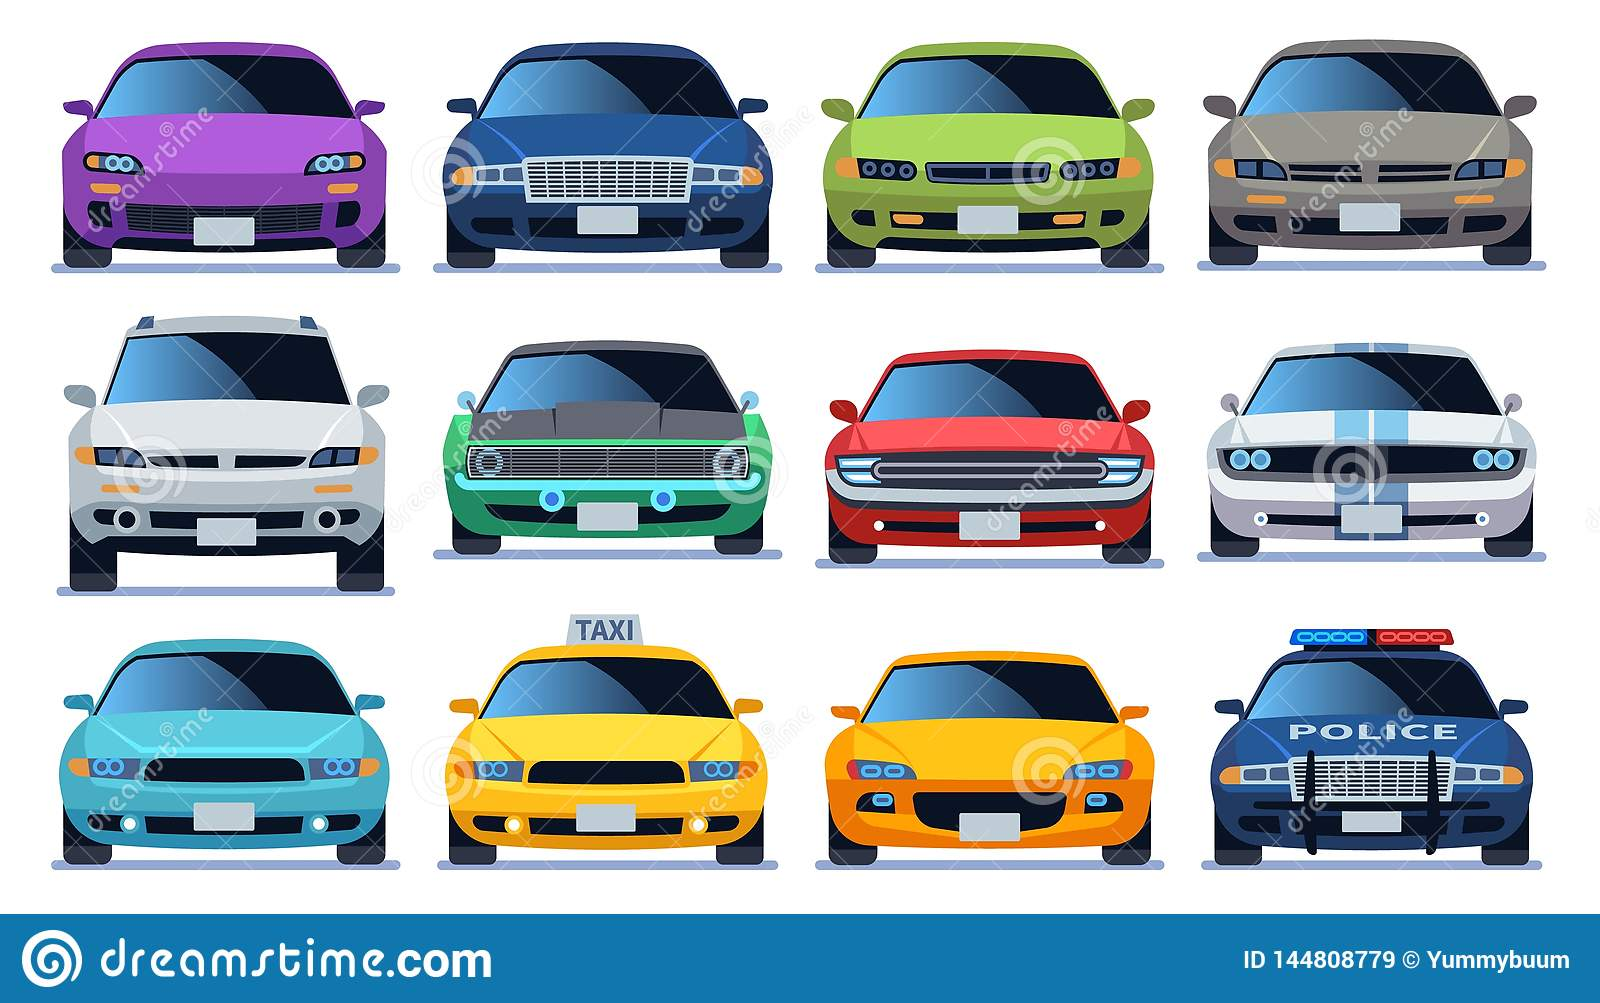 Car front view set. Urban city traffic vehicle model cars. Police and taxy color fast auto traffic driving flat vector